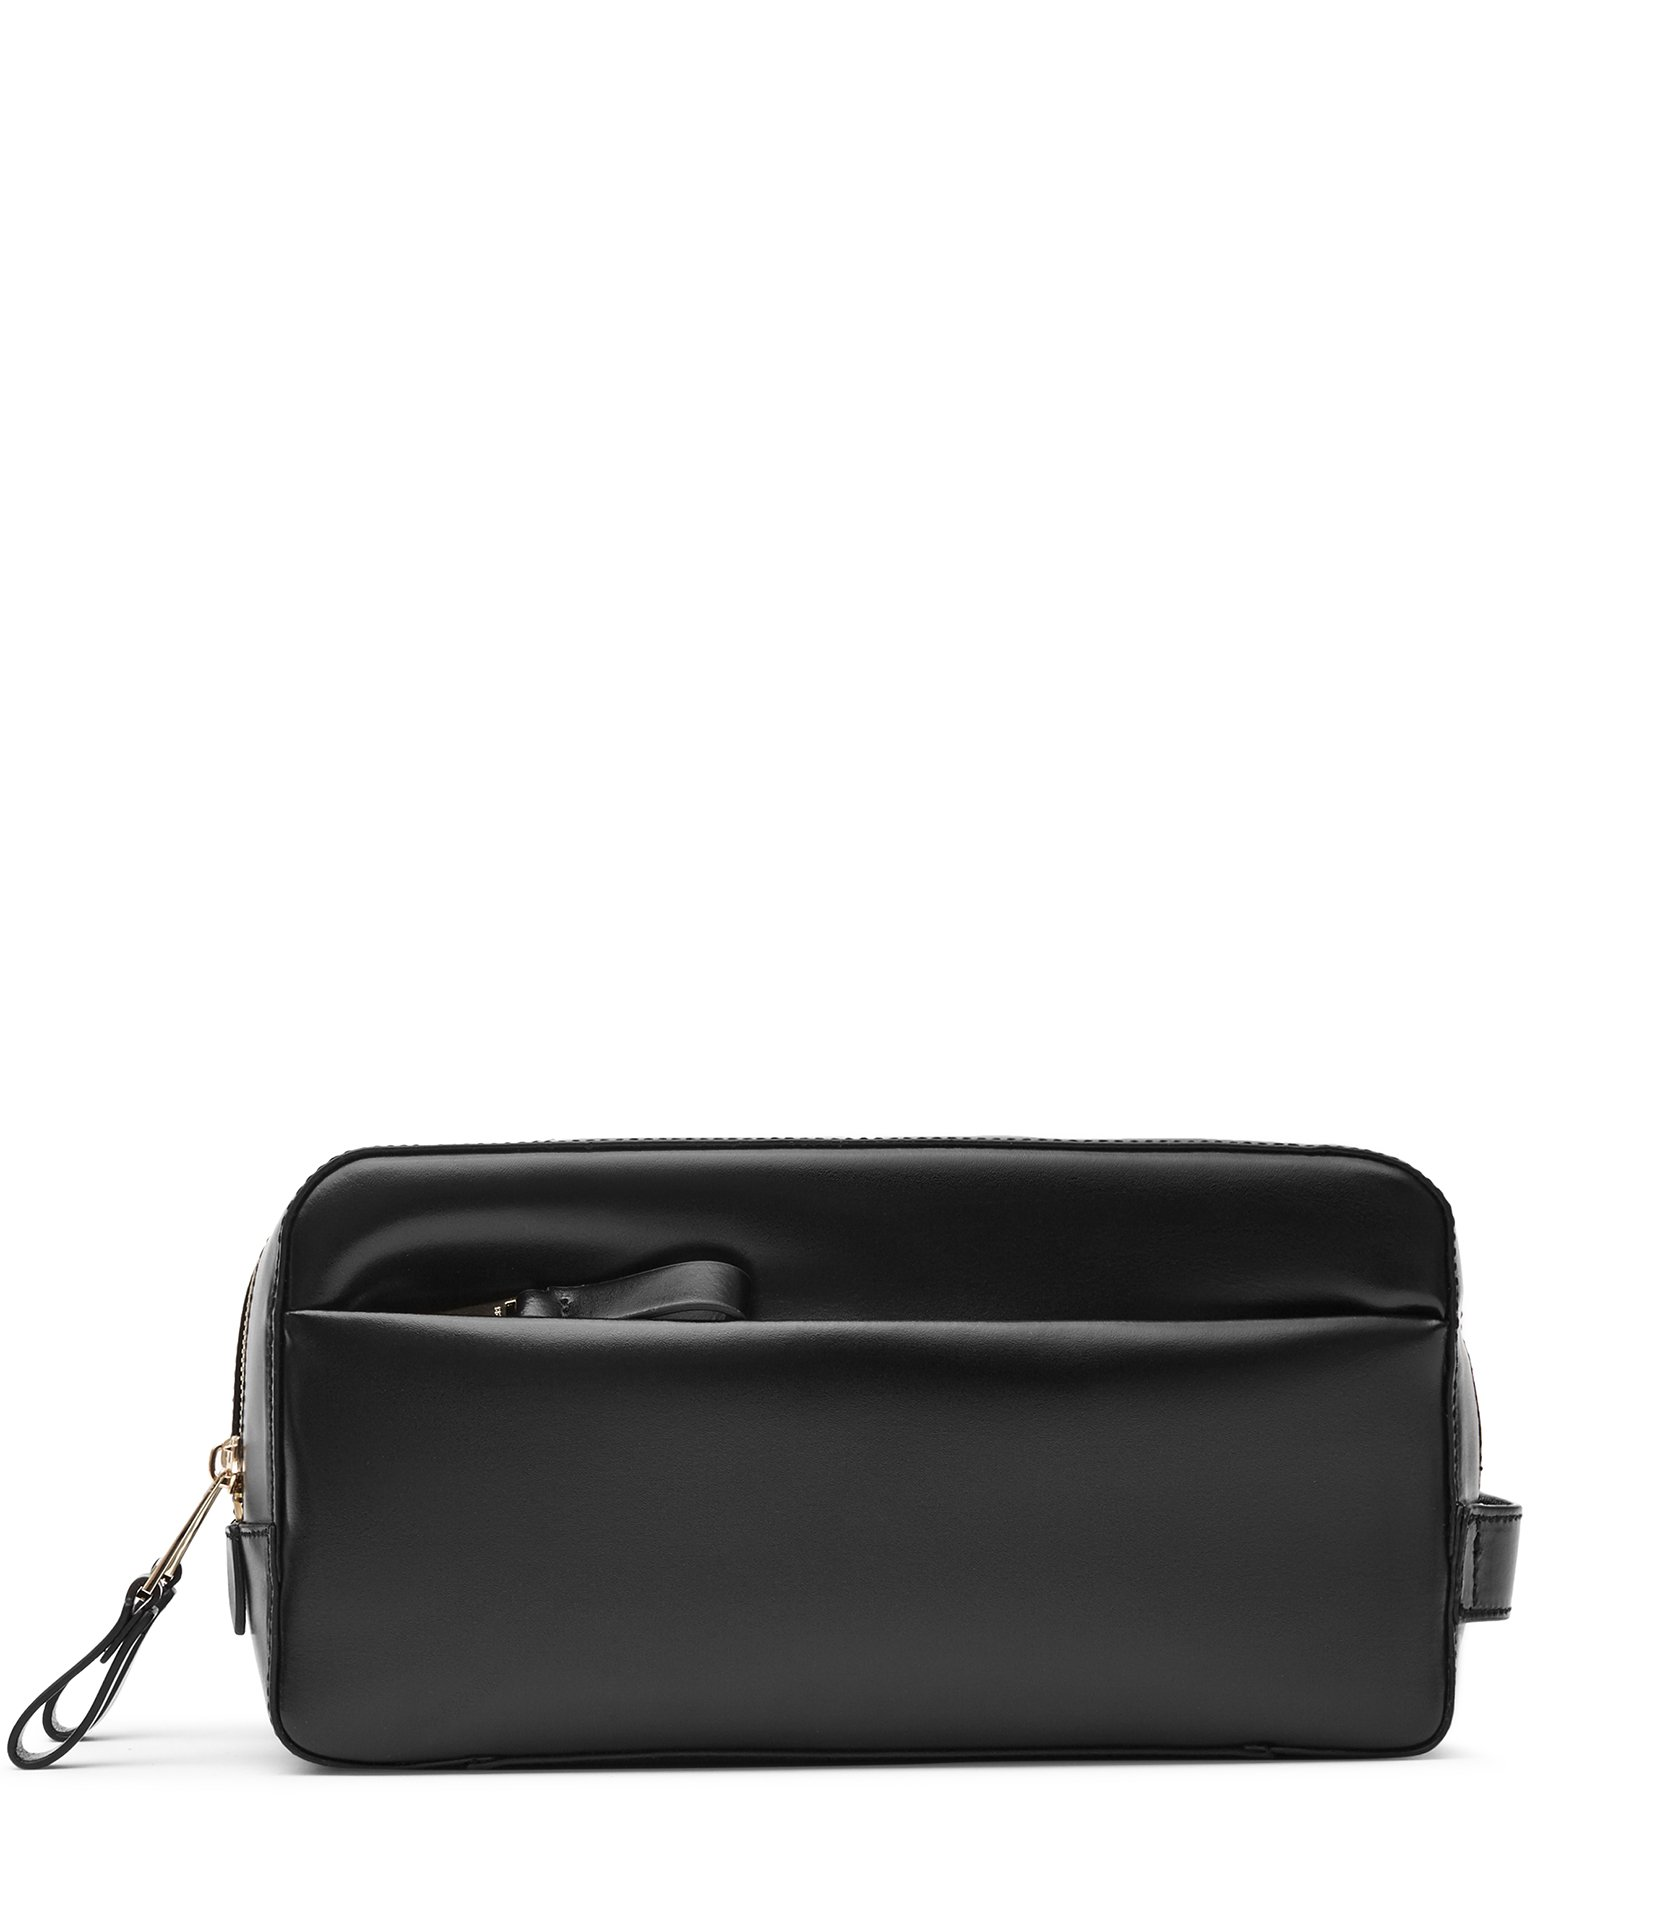 Reiss Black Leather Wash Bag